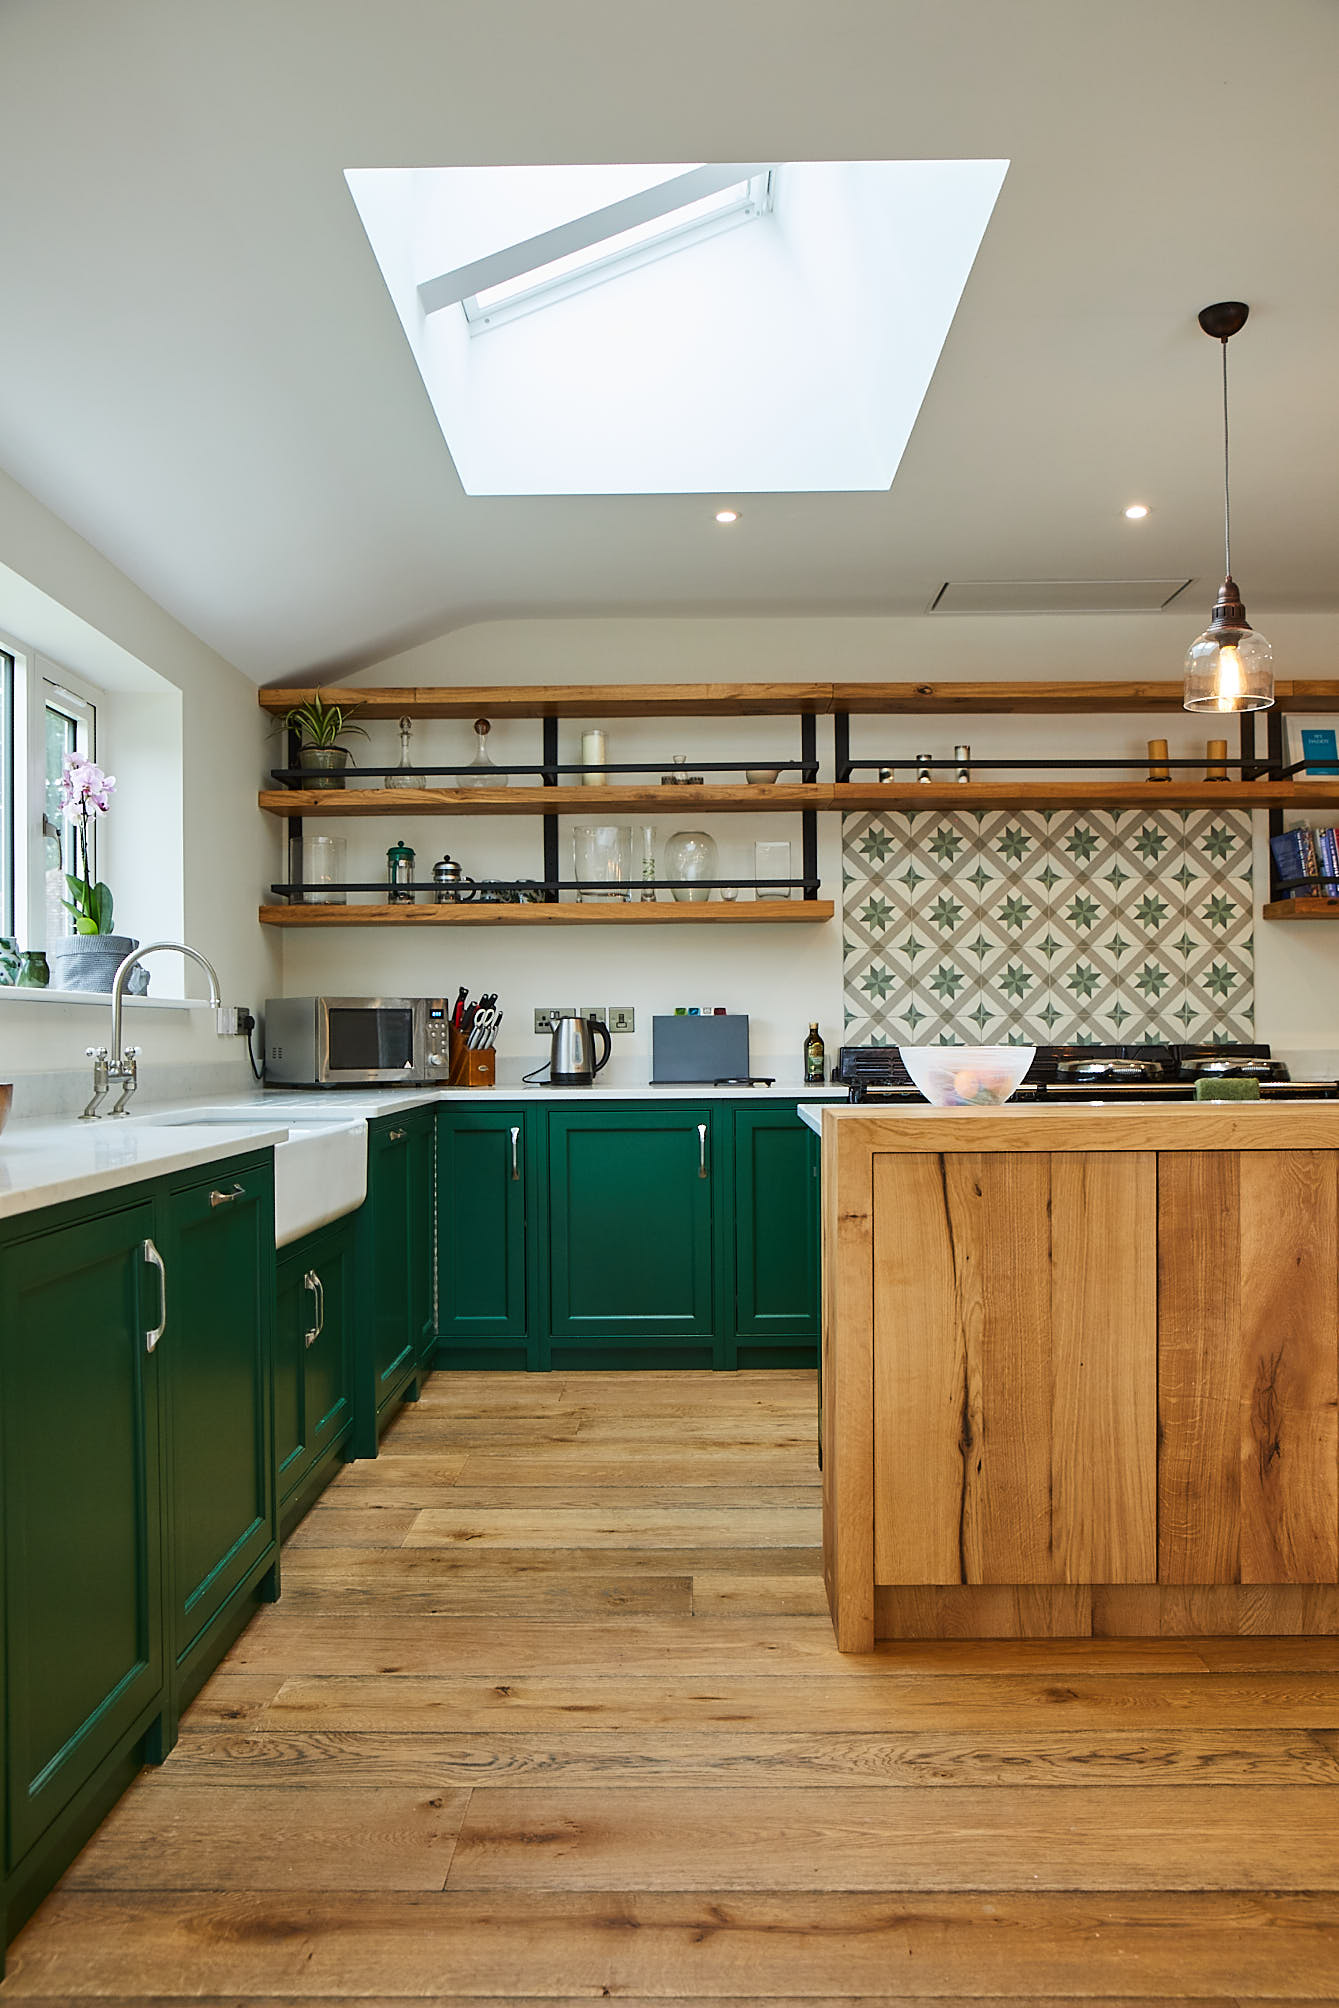 Puck Little Greene kitchen cabinets with oak open shelves and Belfast ceramic sink